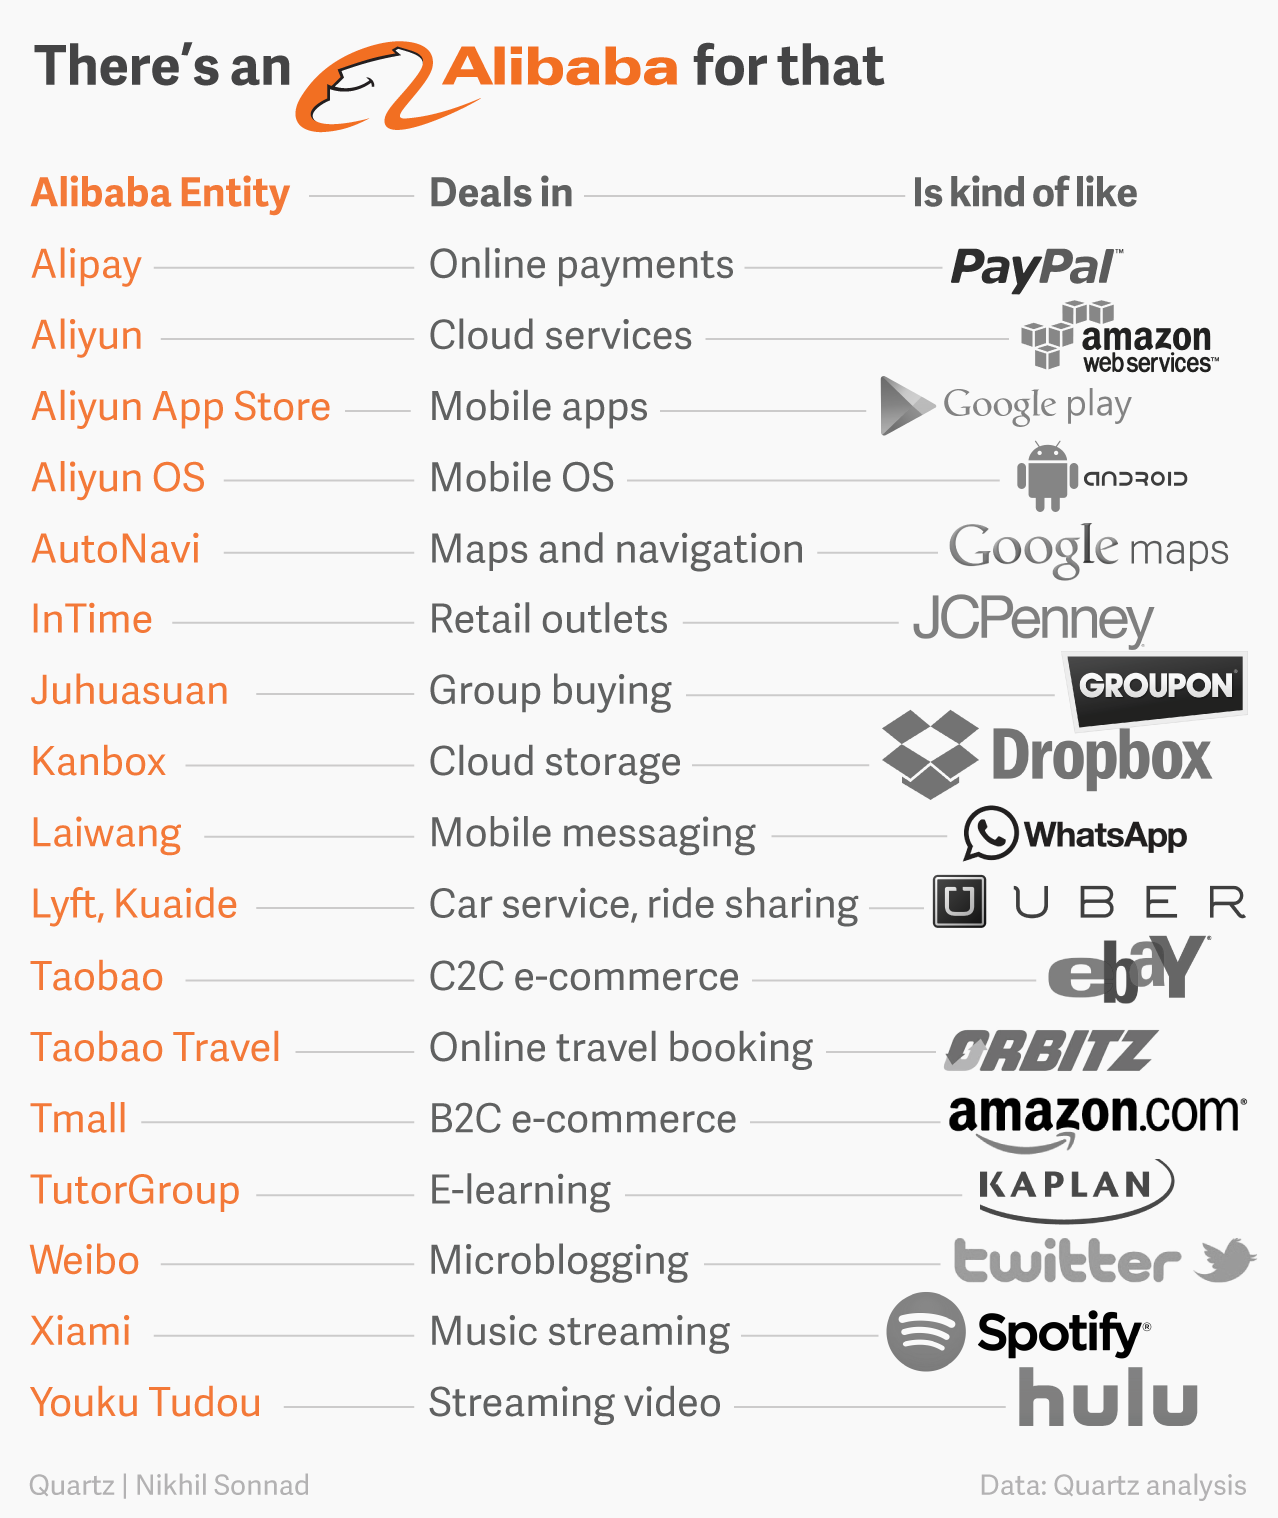 Western comparisons to Alibaba entities